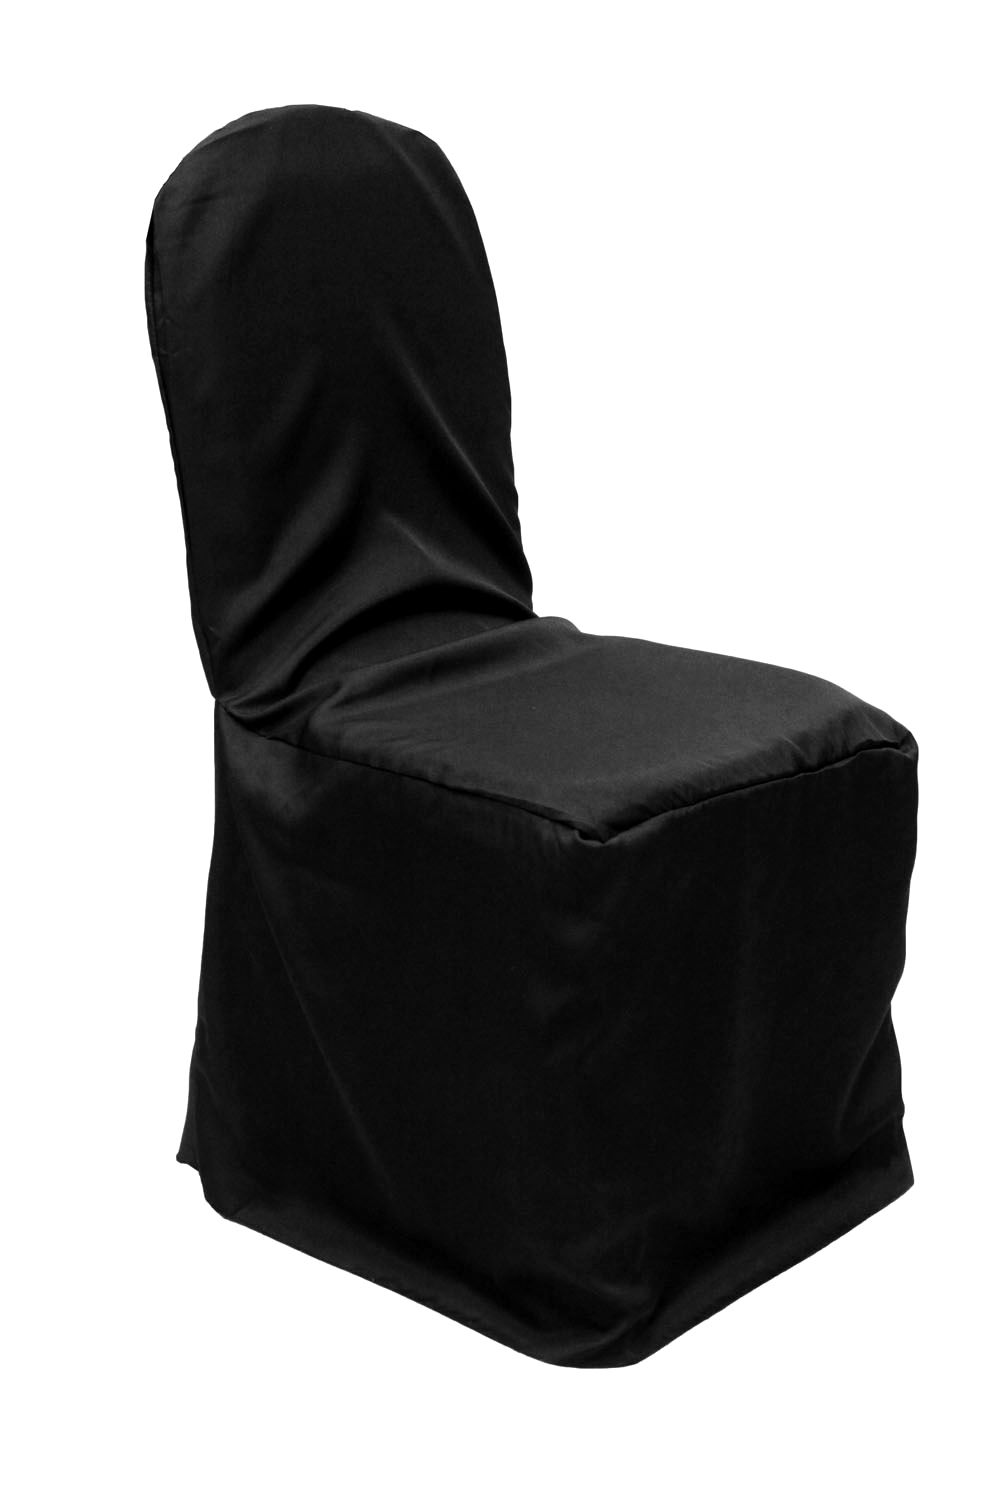 Awesome Economy Polyester Banquet Chair Cover Black 2019 Wedding Creativecarmelina Interior Chair Design Creativecarmelinacom